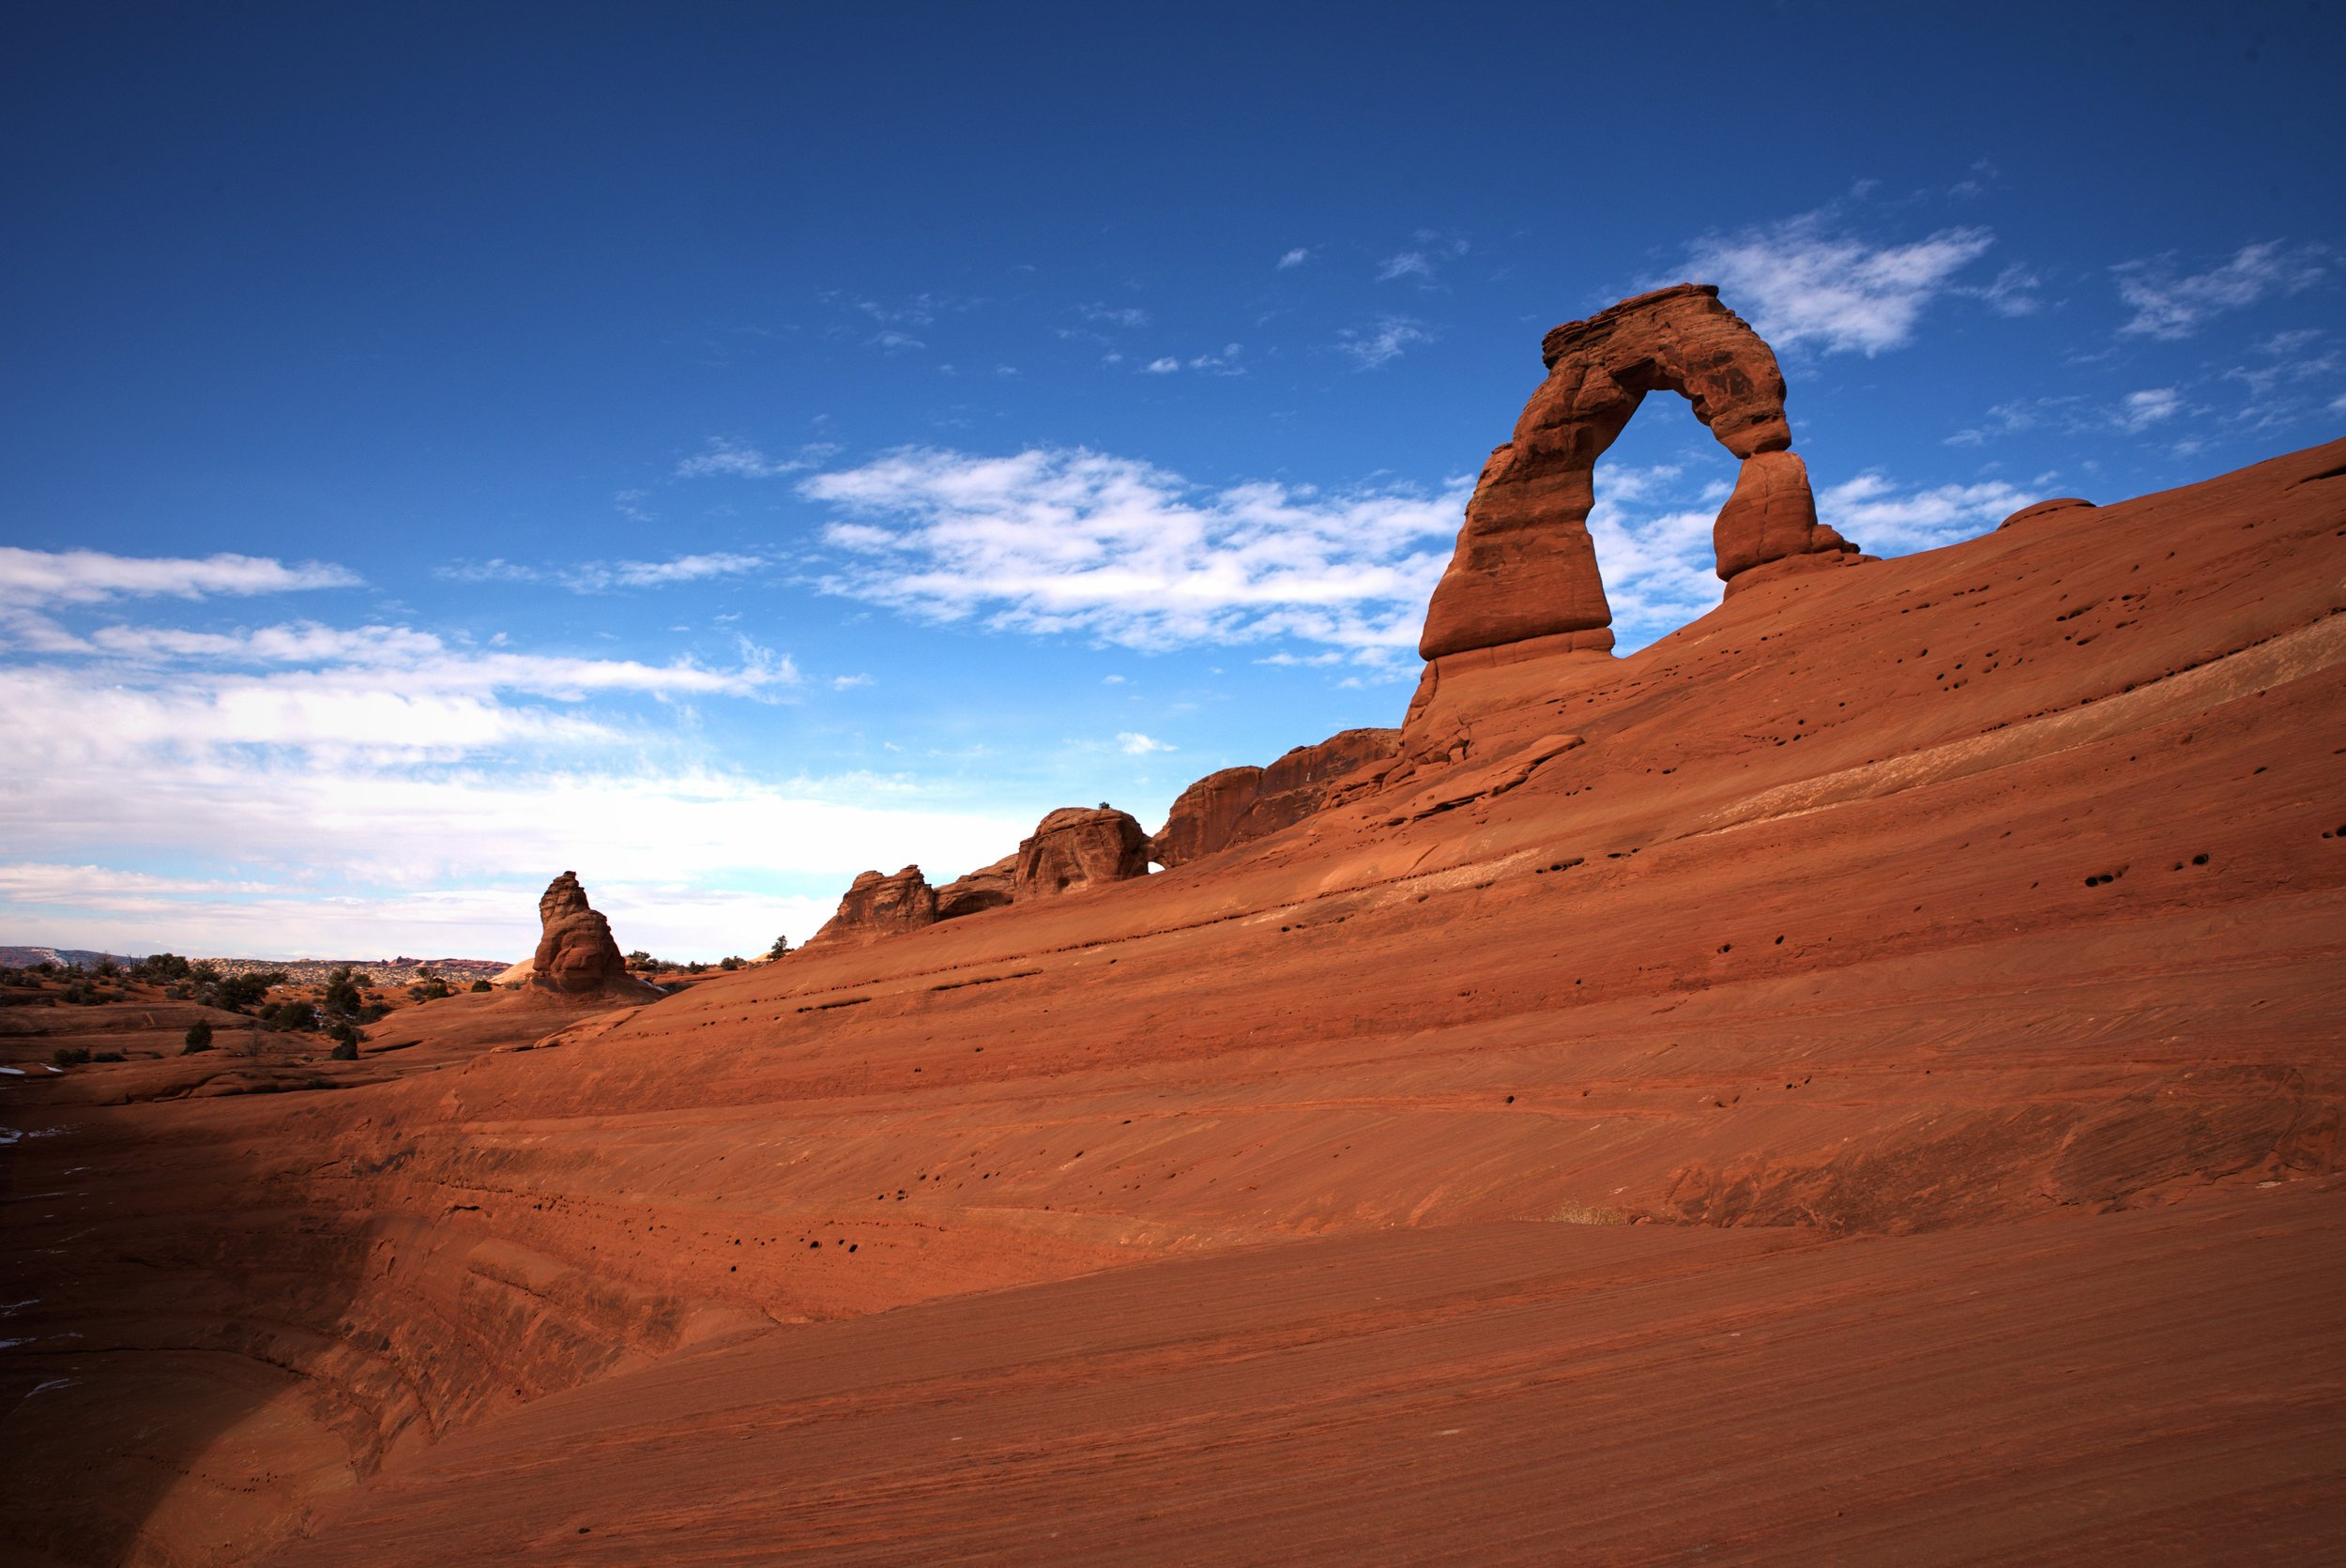 Ian climbed down behind the arch to snap this picture of Delicate Arch from another angle.